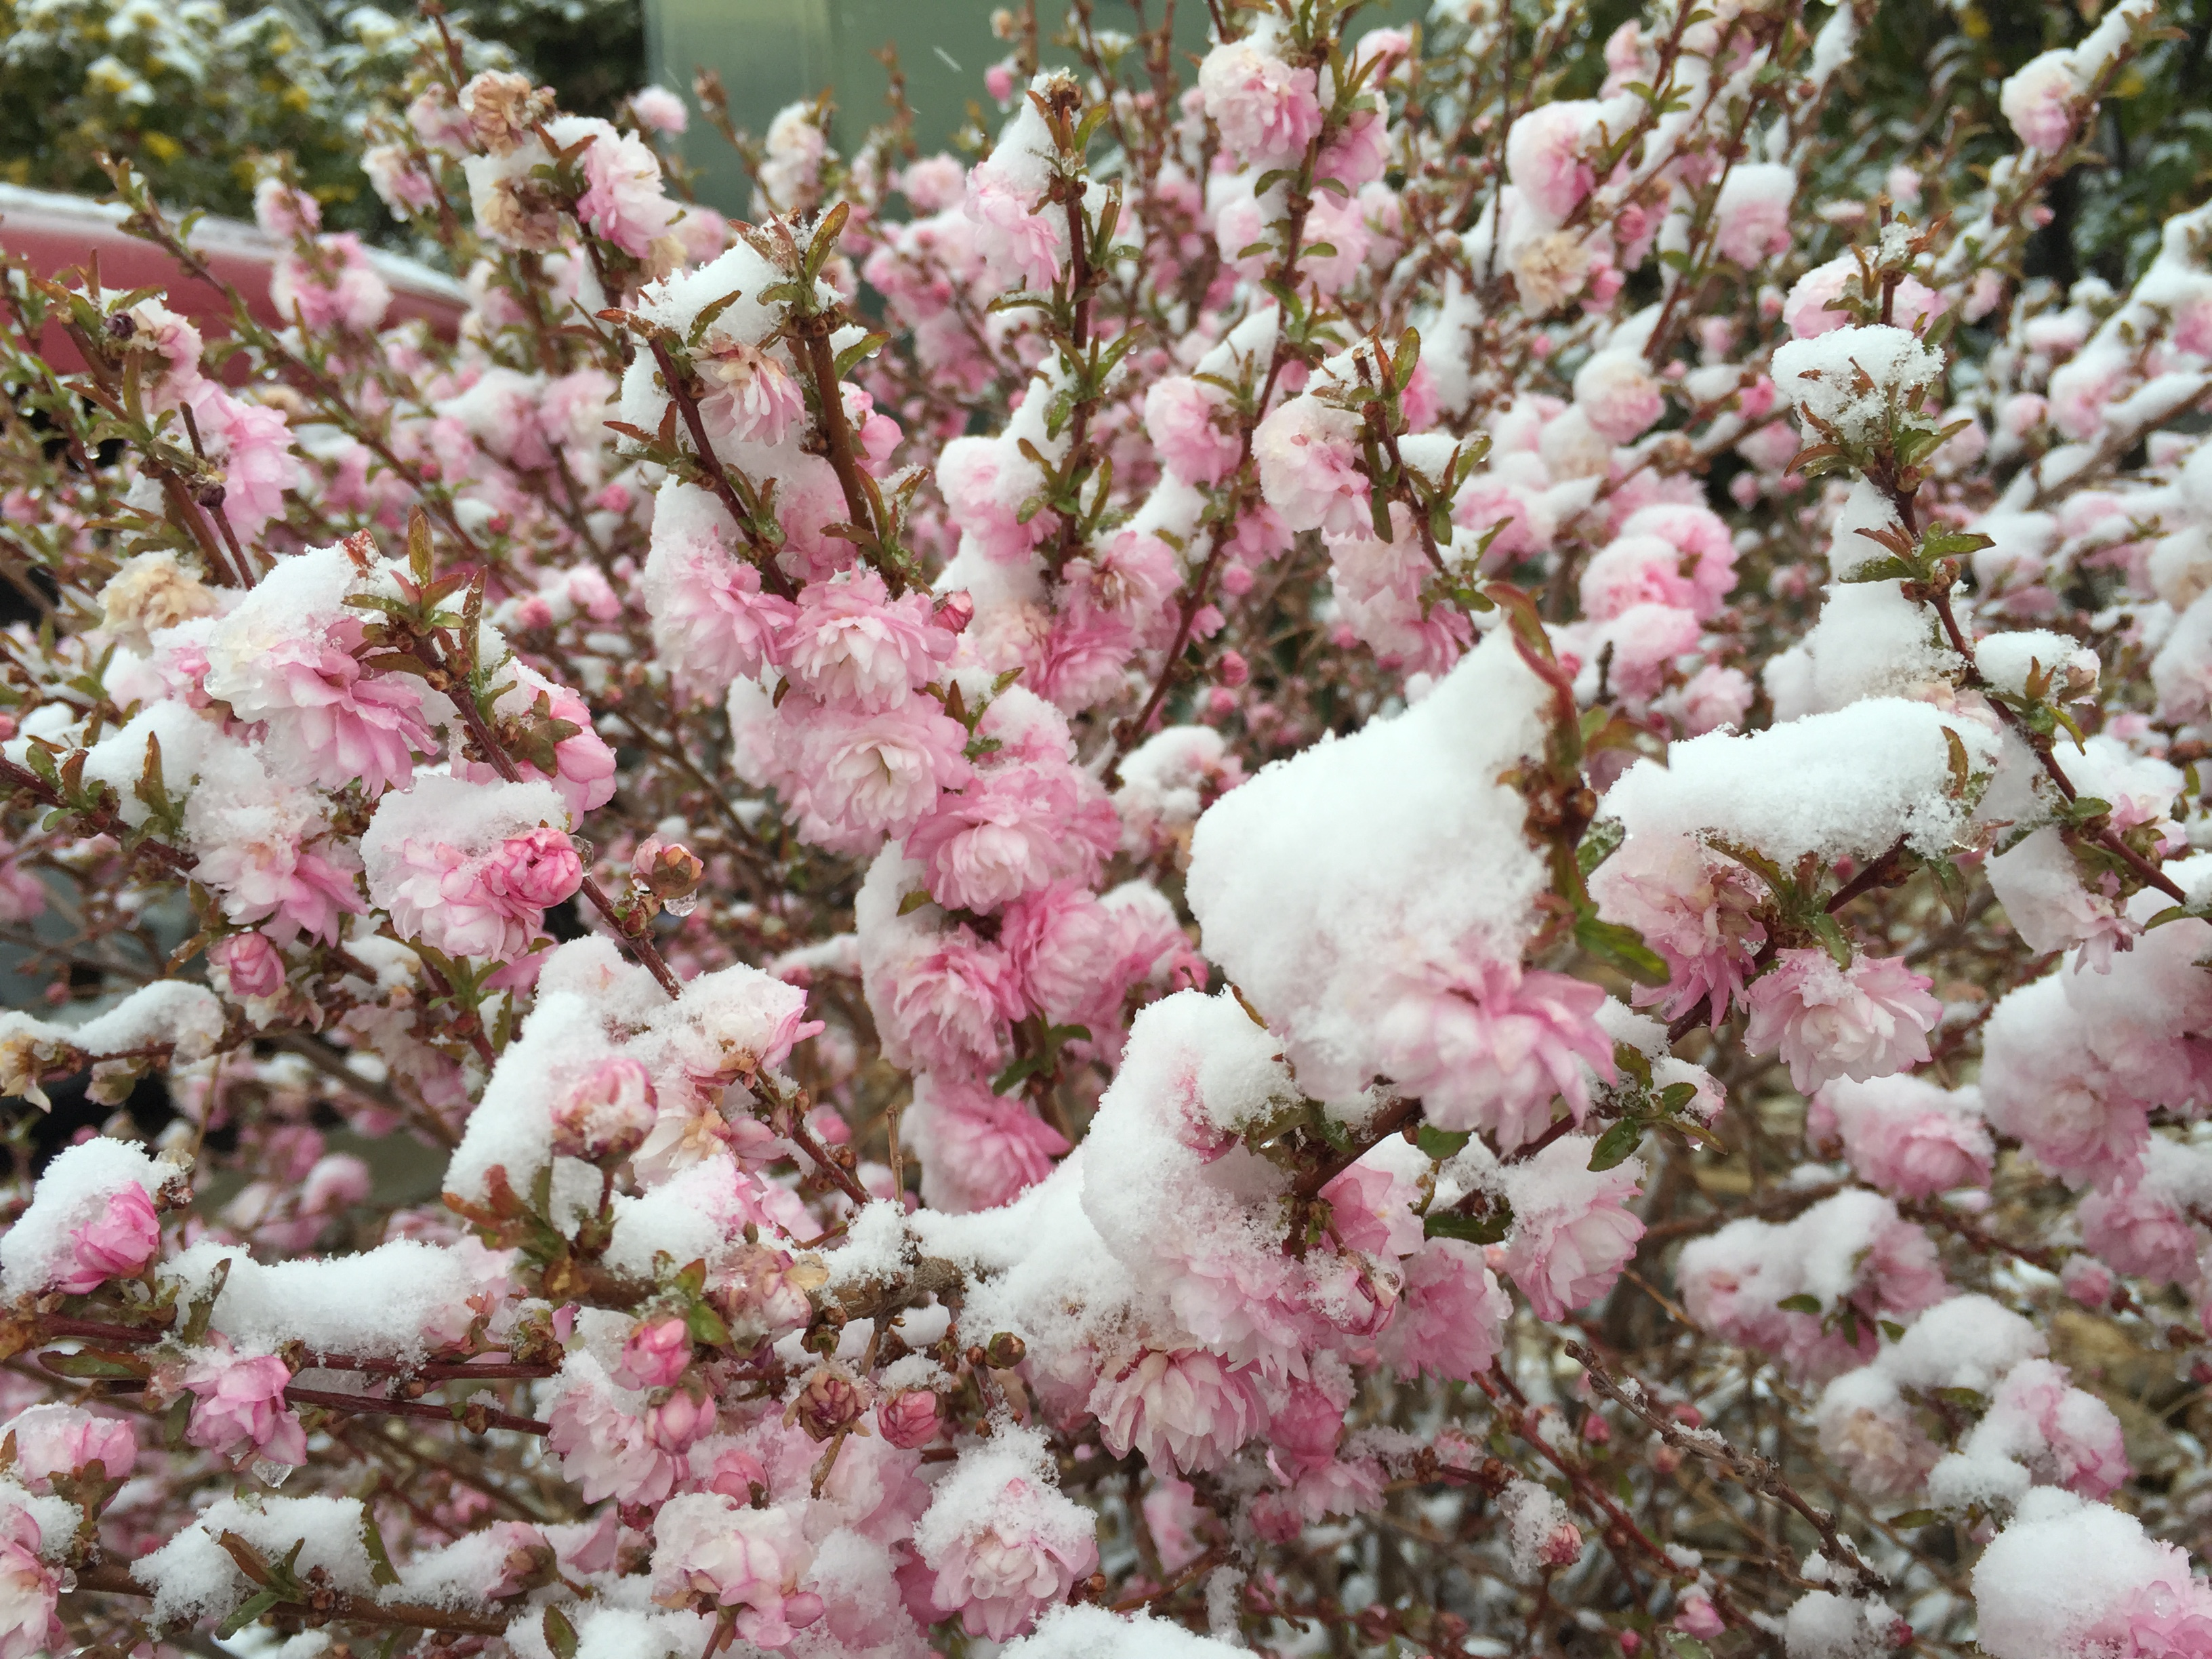 File 2015 04 08 07 48 10 A wet spring snow on Dwarf Flowering Almond blossoms